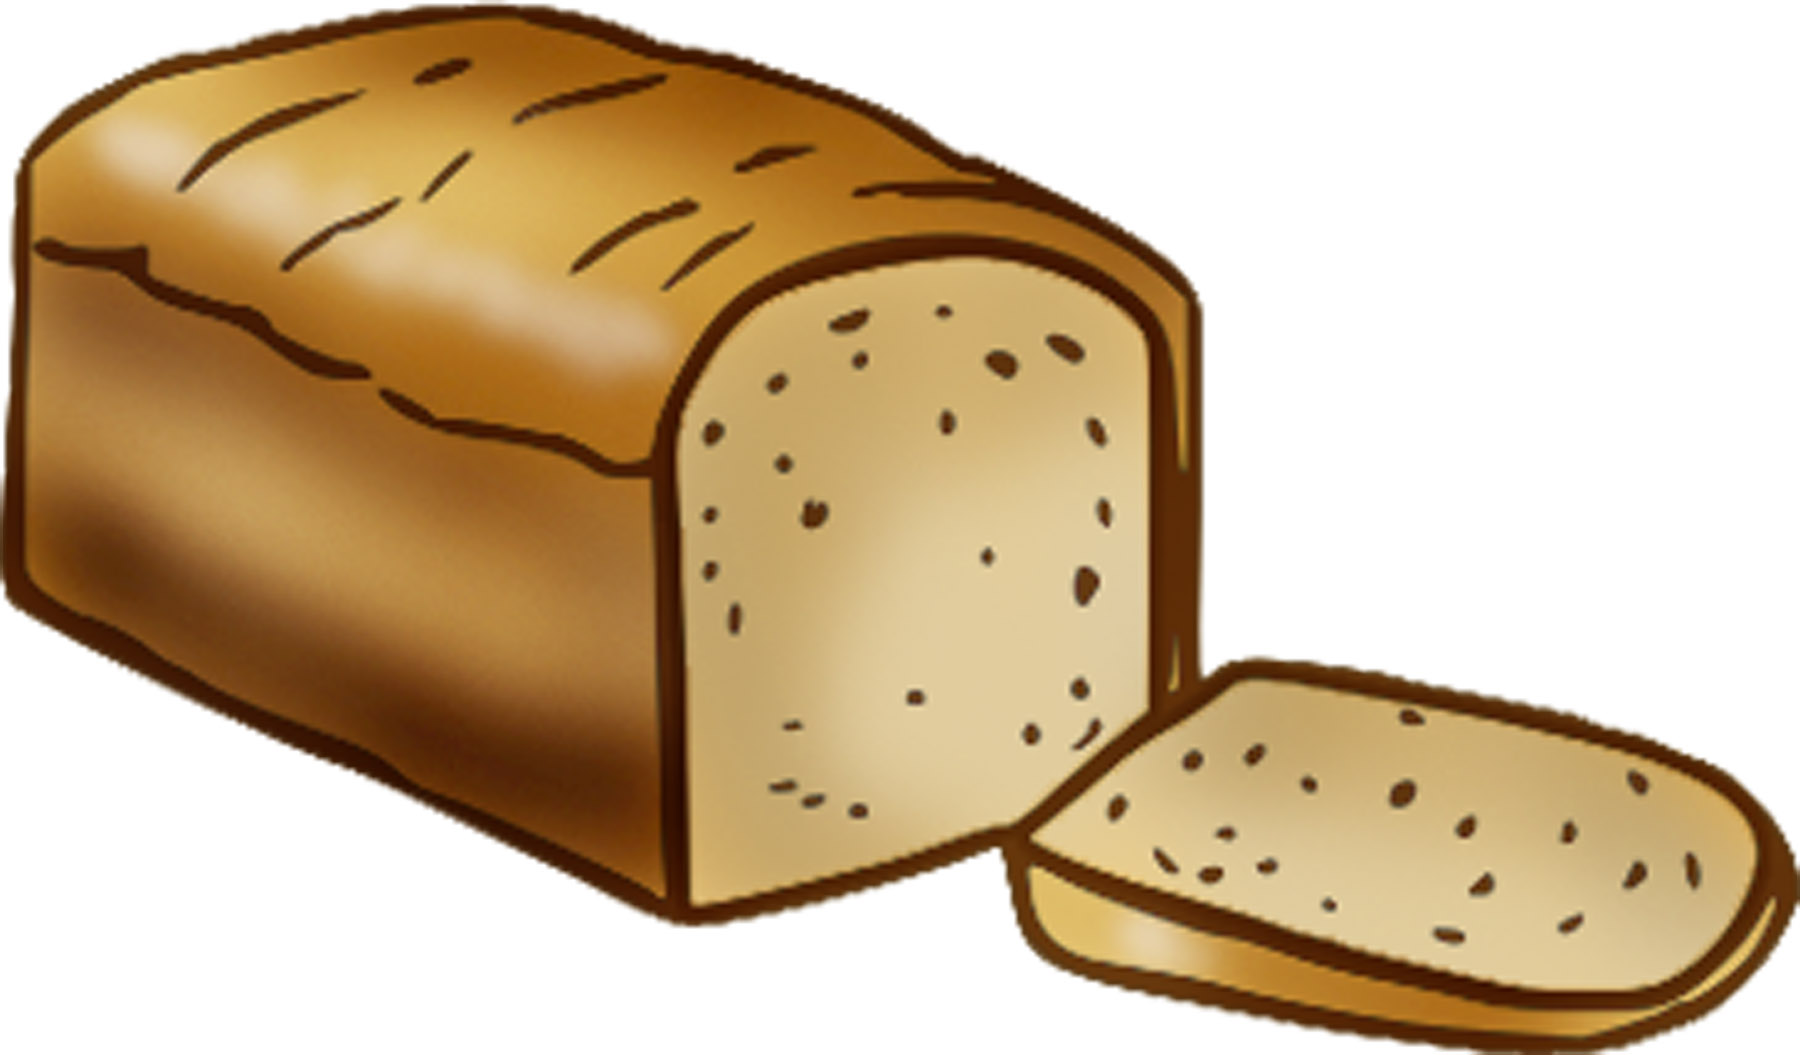 Bread clipart free download clip art on 2